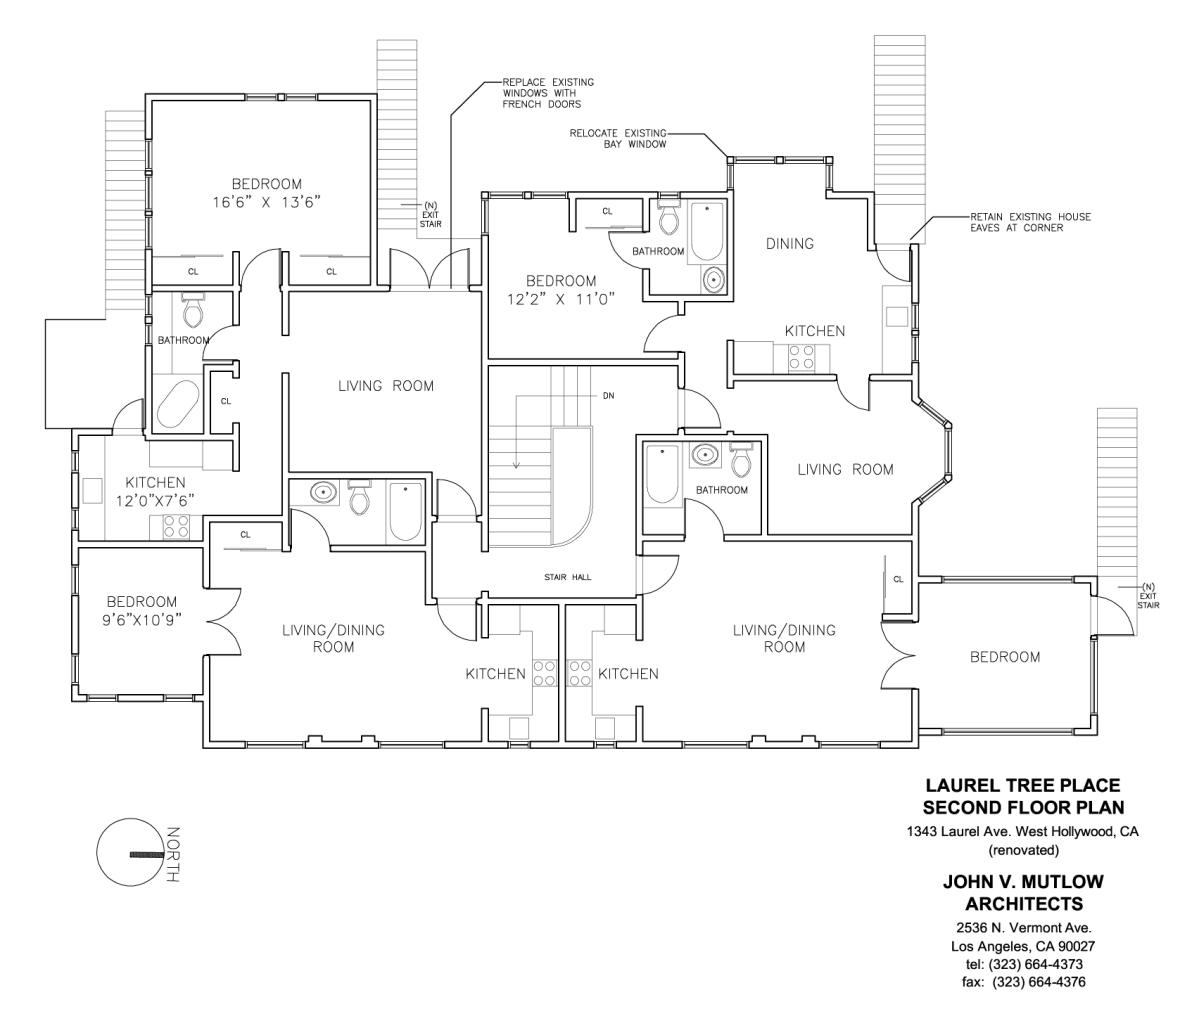 Laurel Tree House Second Floor Plan copy